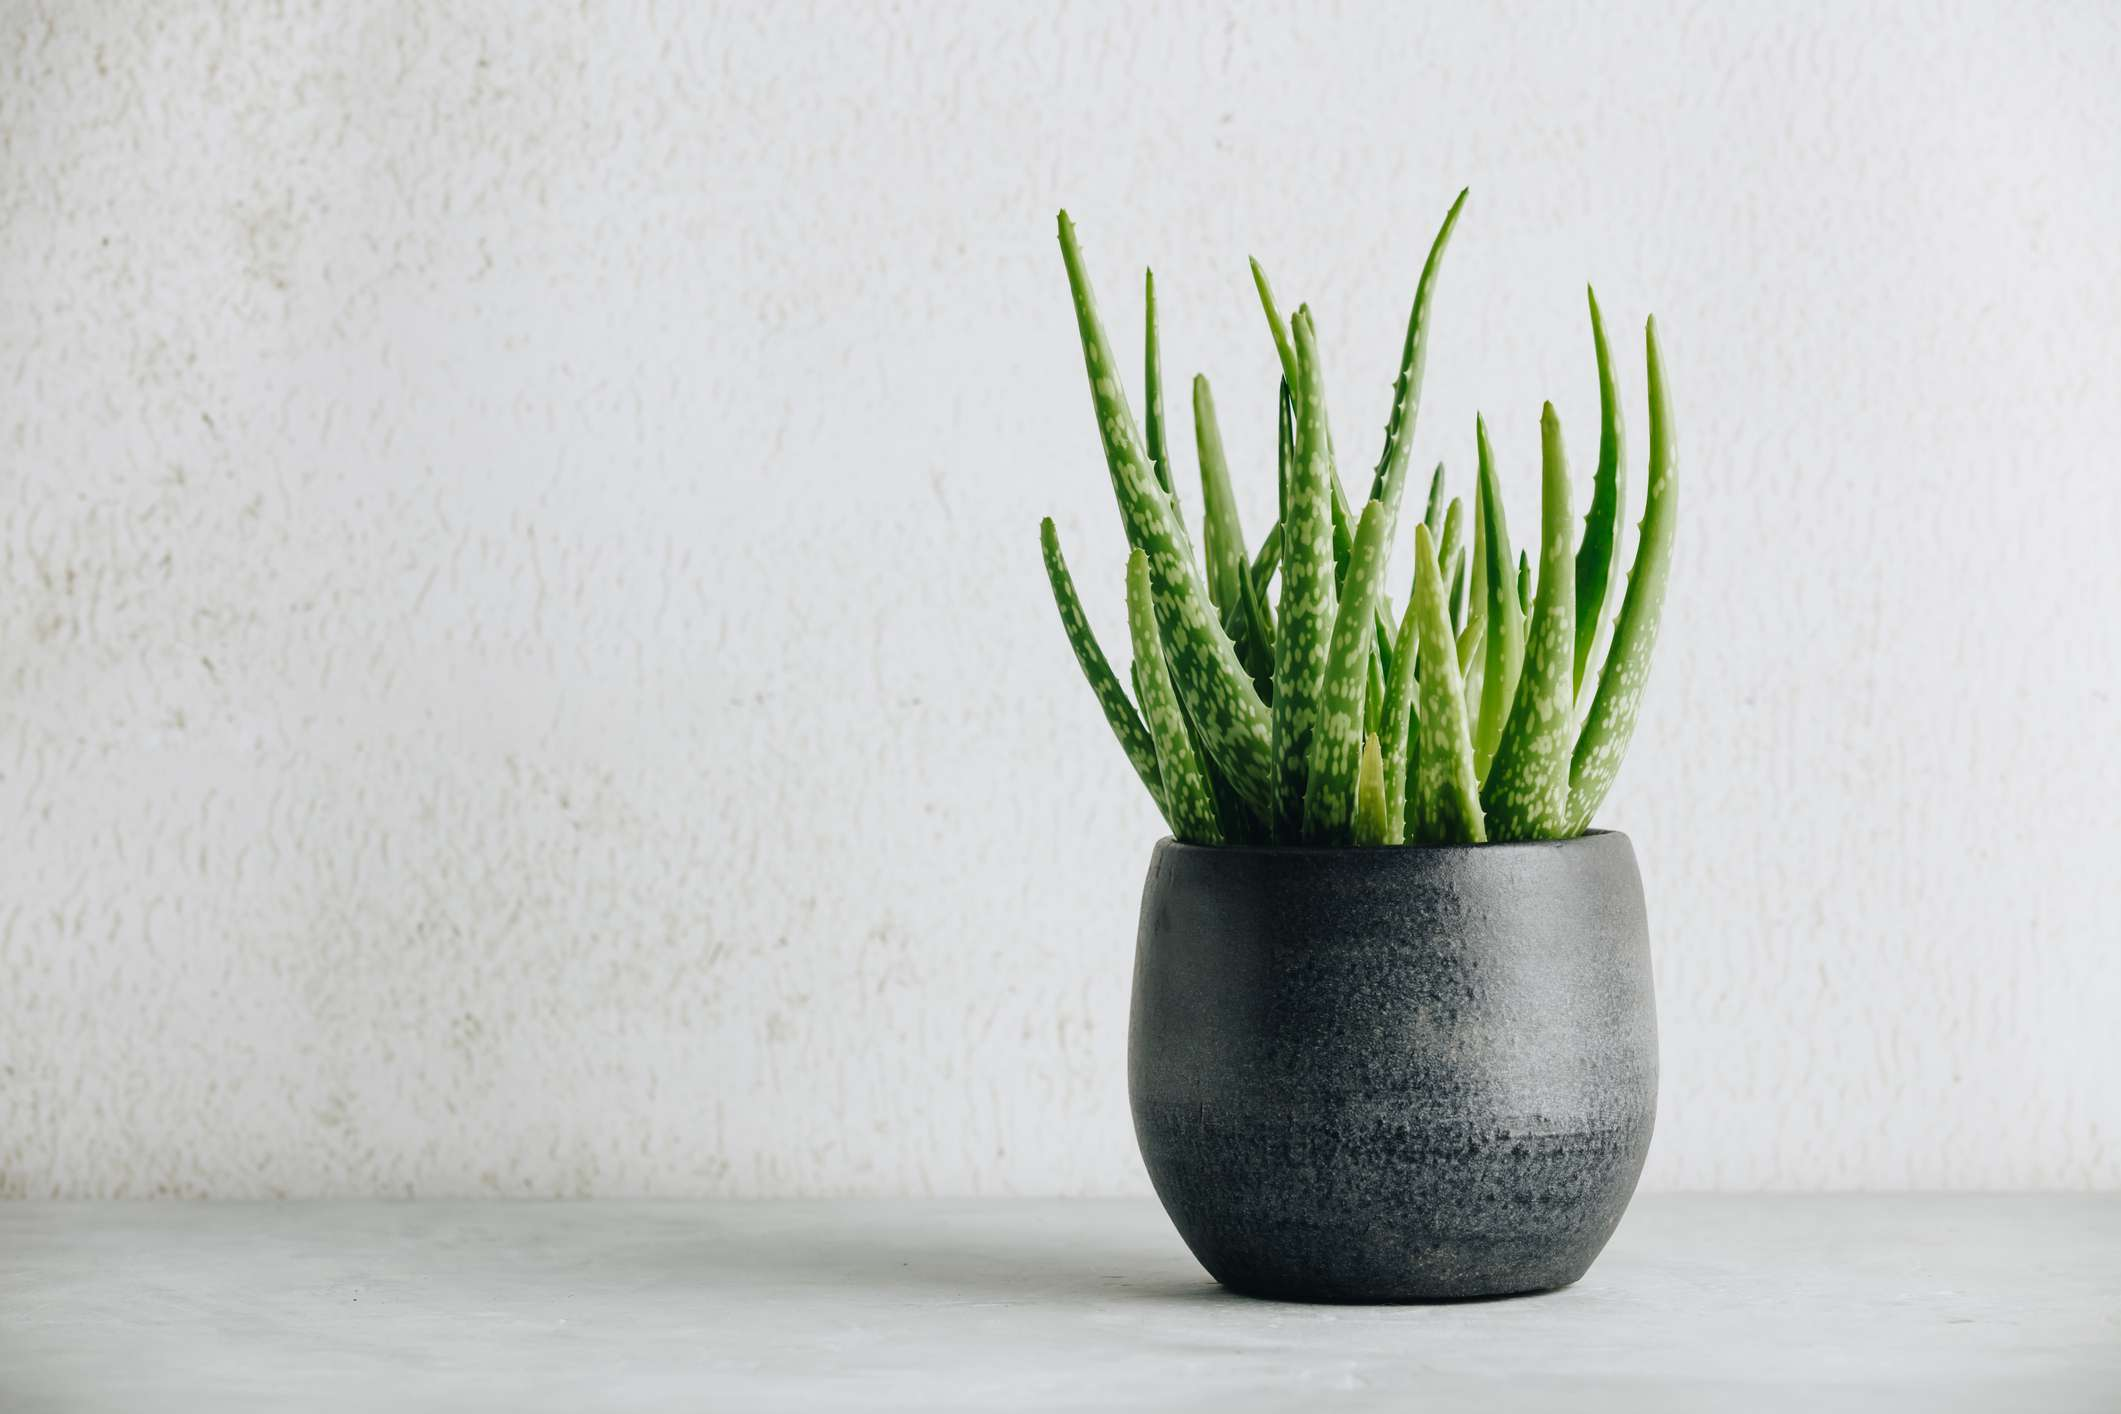 Aloe plant in a black pot with a white background